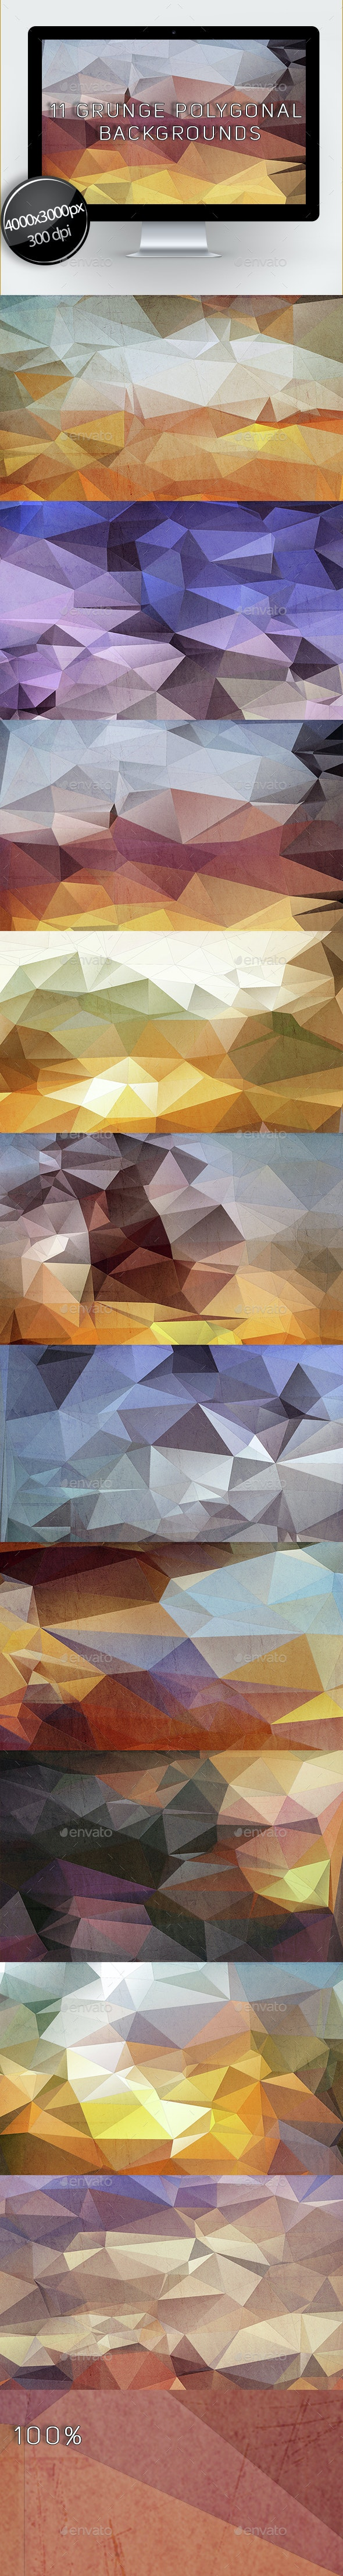 11 Grunge Polygonal Backgrounds - Abstract Backgrounds